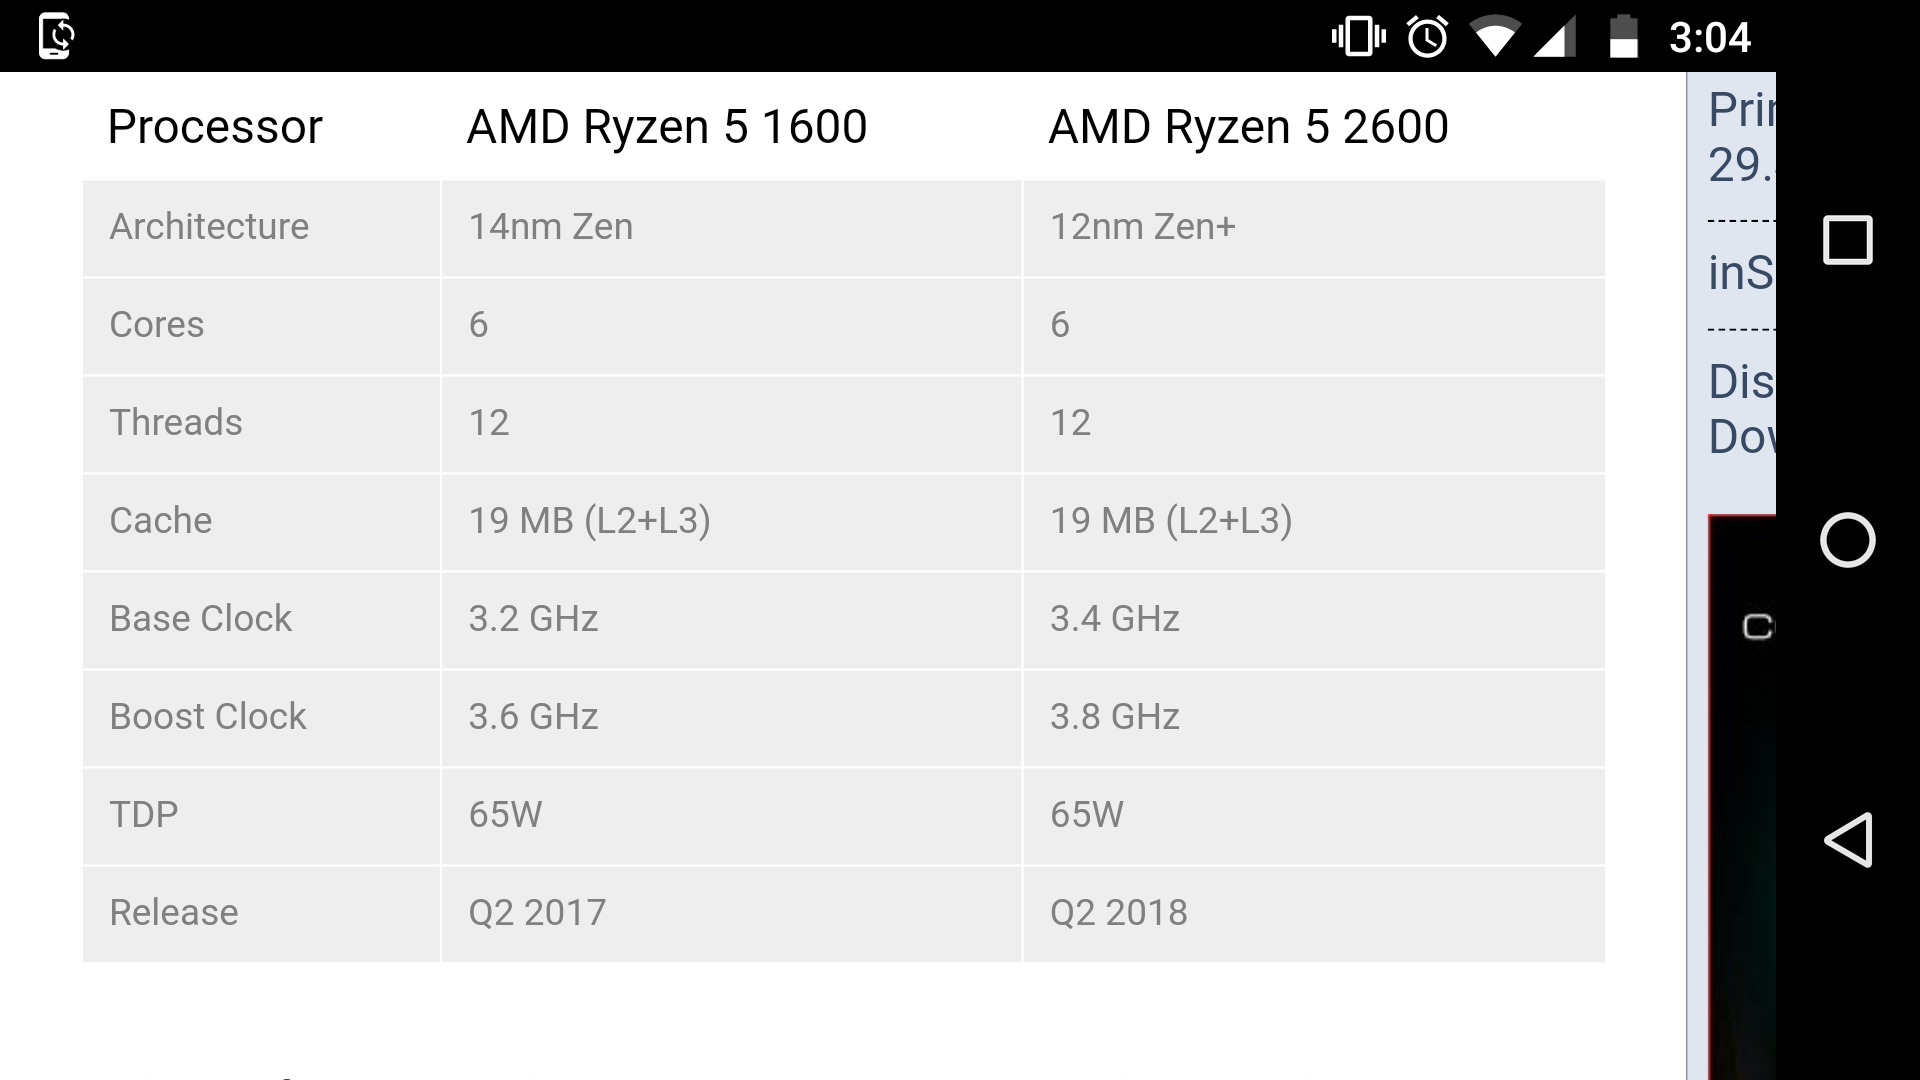 AMD Ryzen 5 2600 specs leaked - CPUs, Motherboards, and Memory